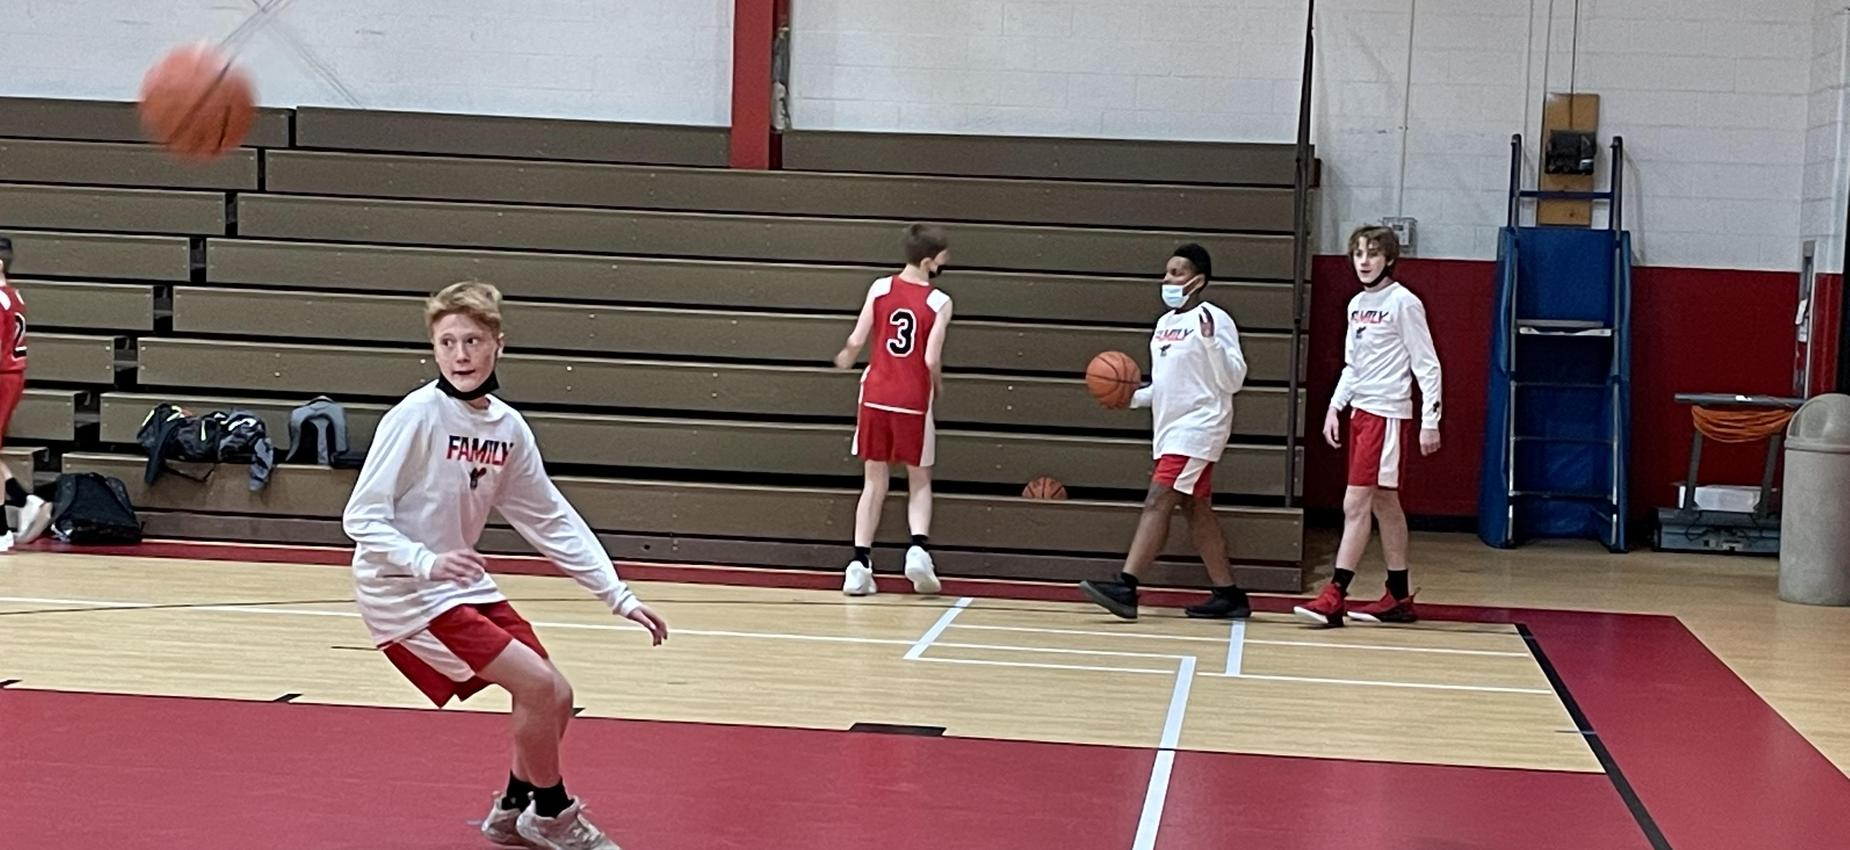 Basketball players practice in a gym.